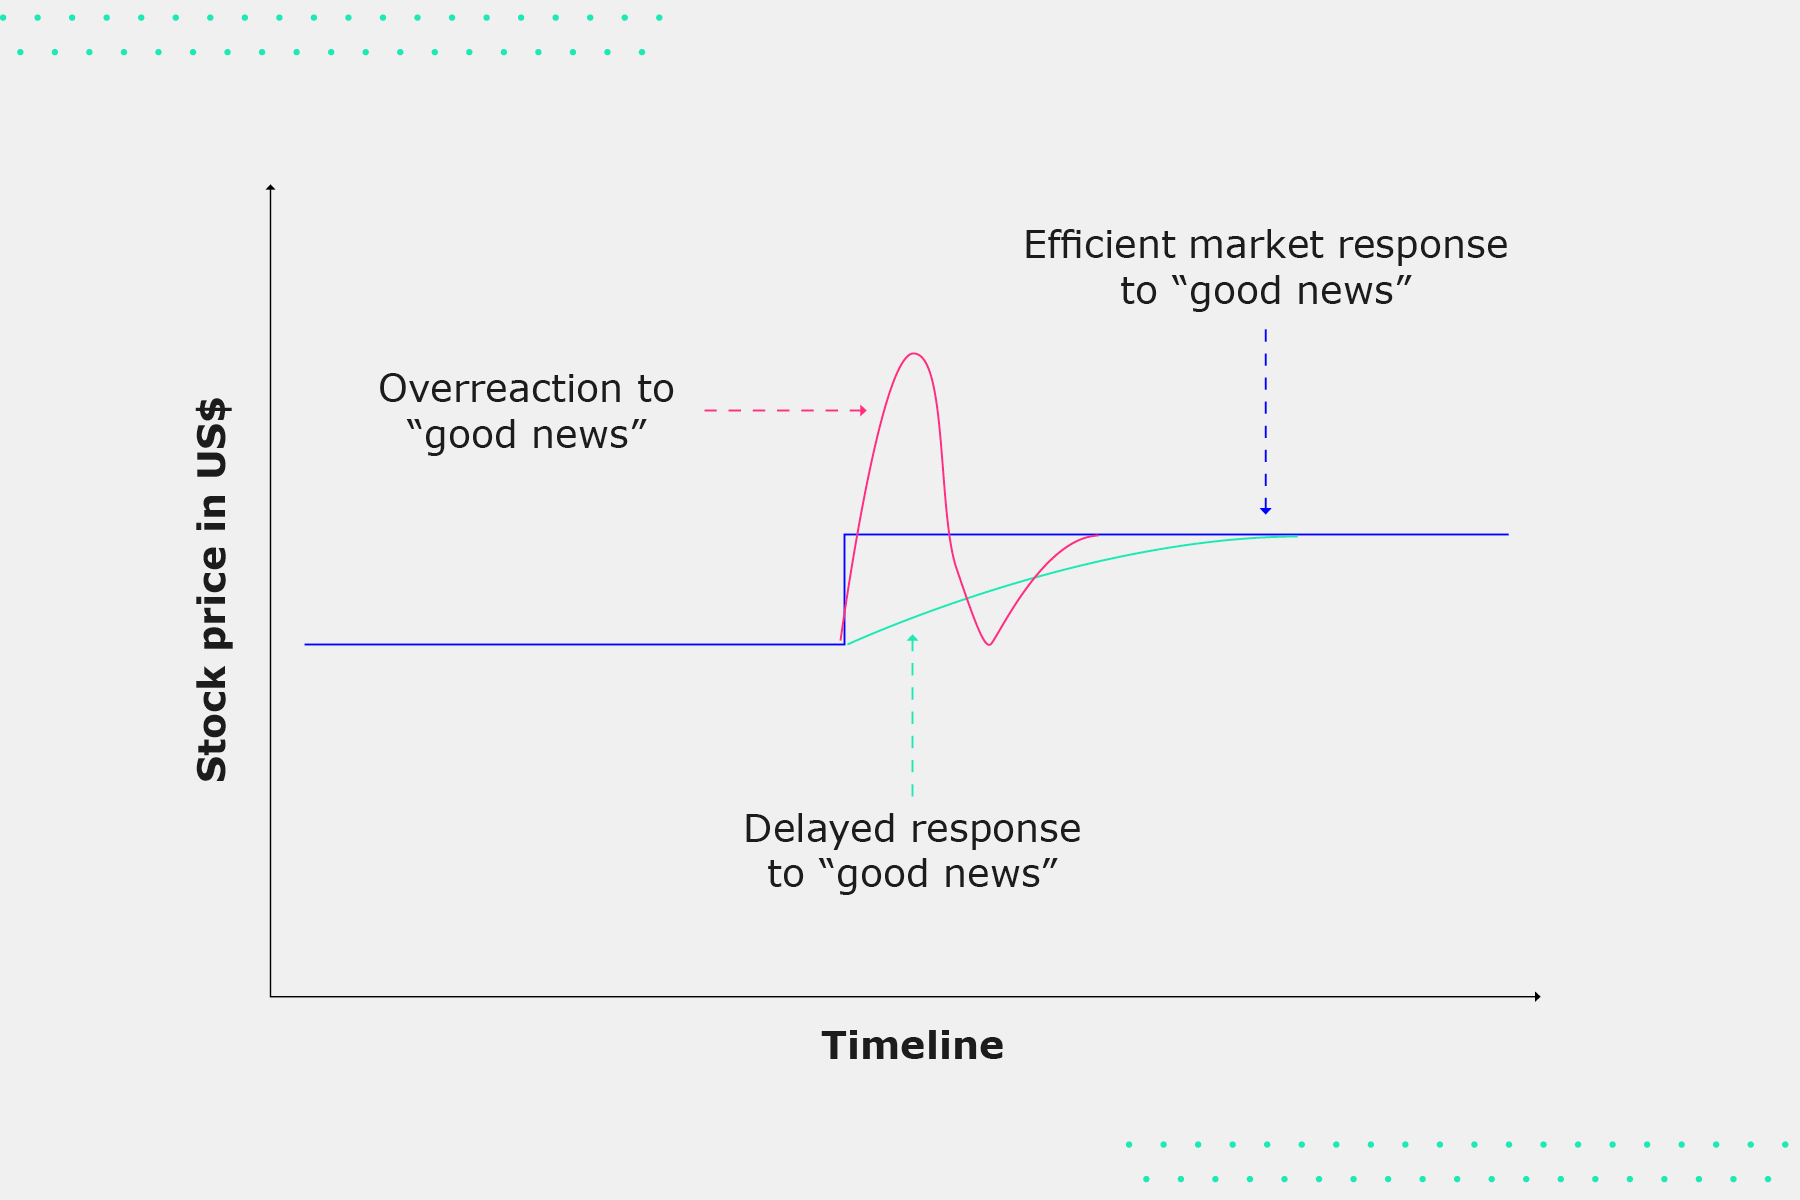 """Graphic shows """" Stocks EMT in graphs"""". Y-axis reads: """"Stock price in US$"""". X-axis reads: """"Timeline"""". There are three lines. 1st line for """"Efficient market response to good news"""" which shows a short direct vertical increase turning into straight horizontal line. The second line reads """"Overreaction to good news"""" which shows a large vertical spike followed quickly by a lull. The third line reads """"Delayed response to good news"""" which shows a steady increase that steadies out at as it reaches its high point."""